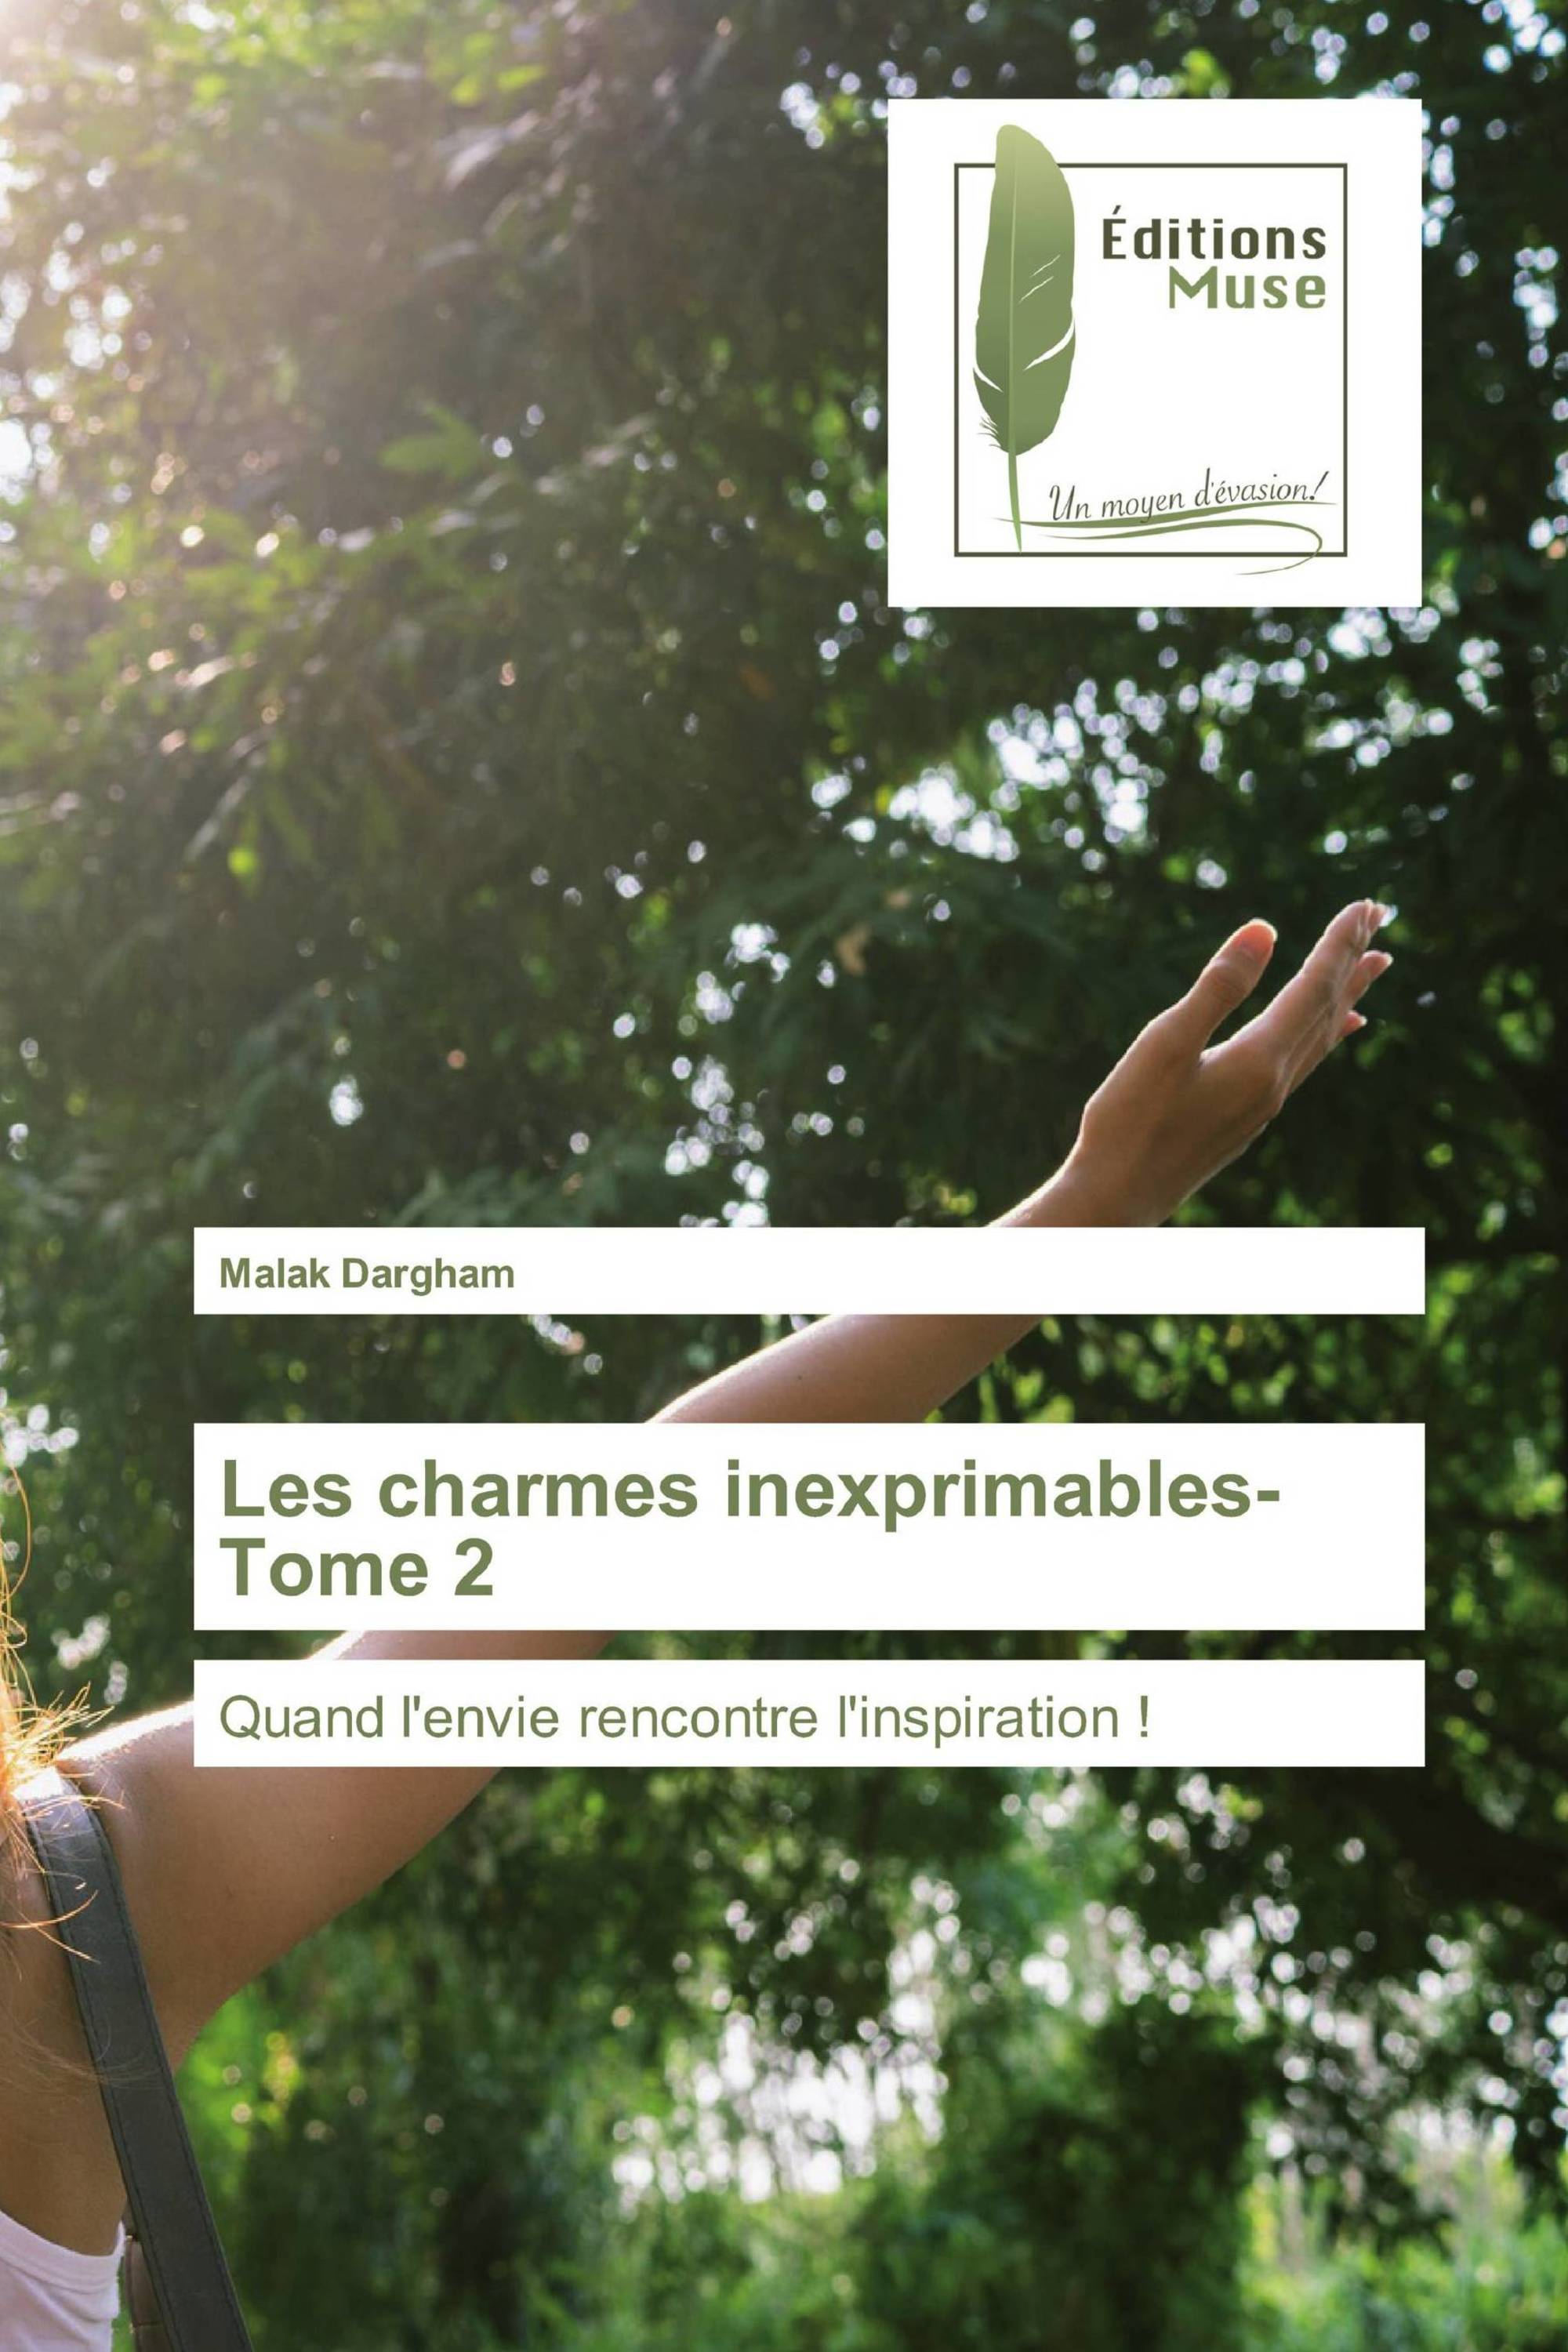 Les charmes inexprimables- Tome 2